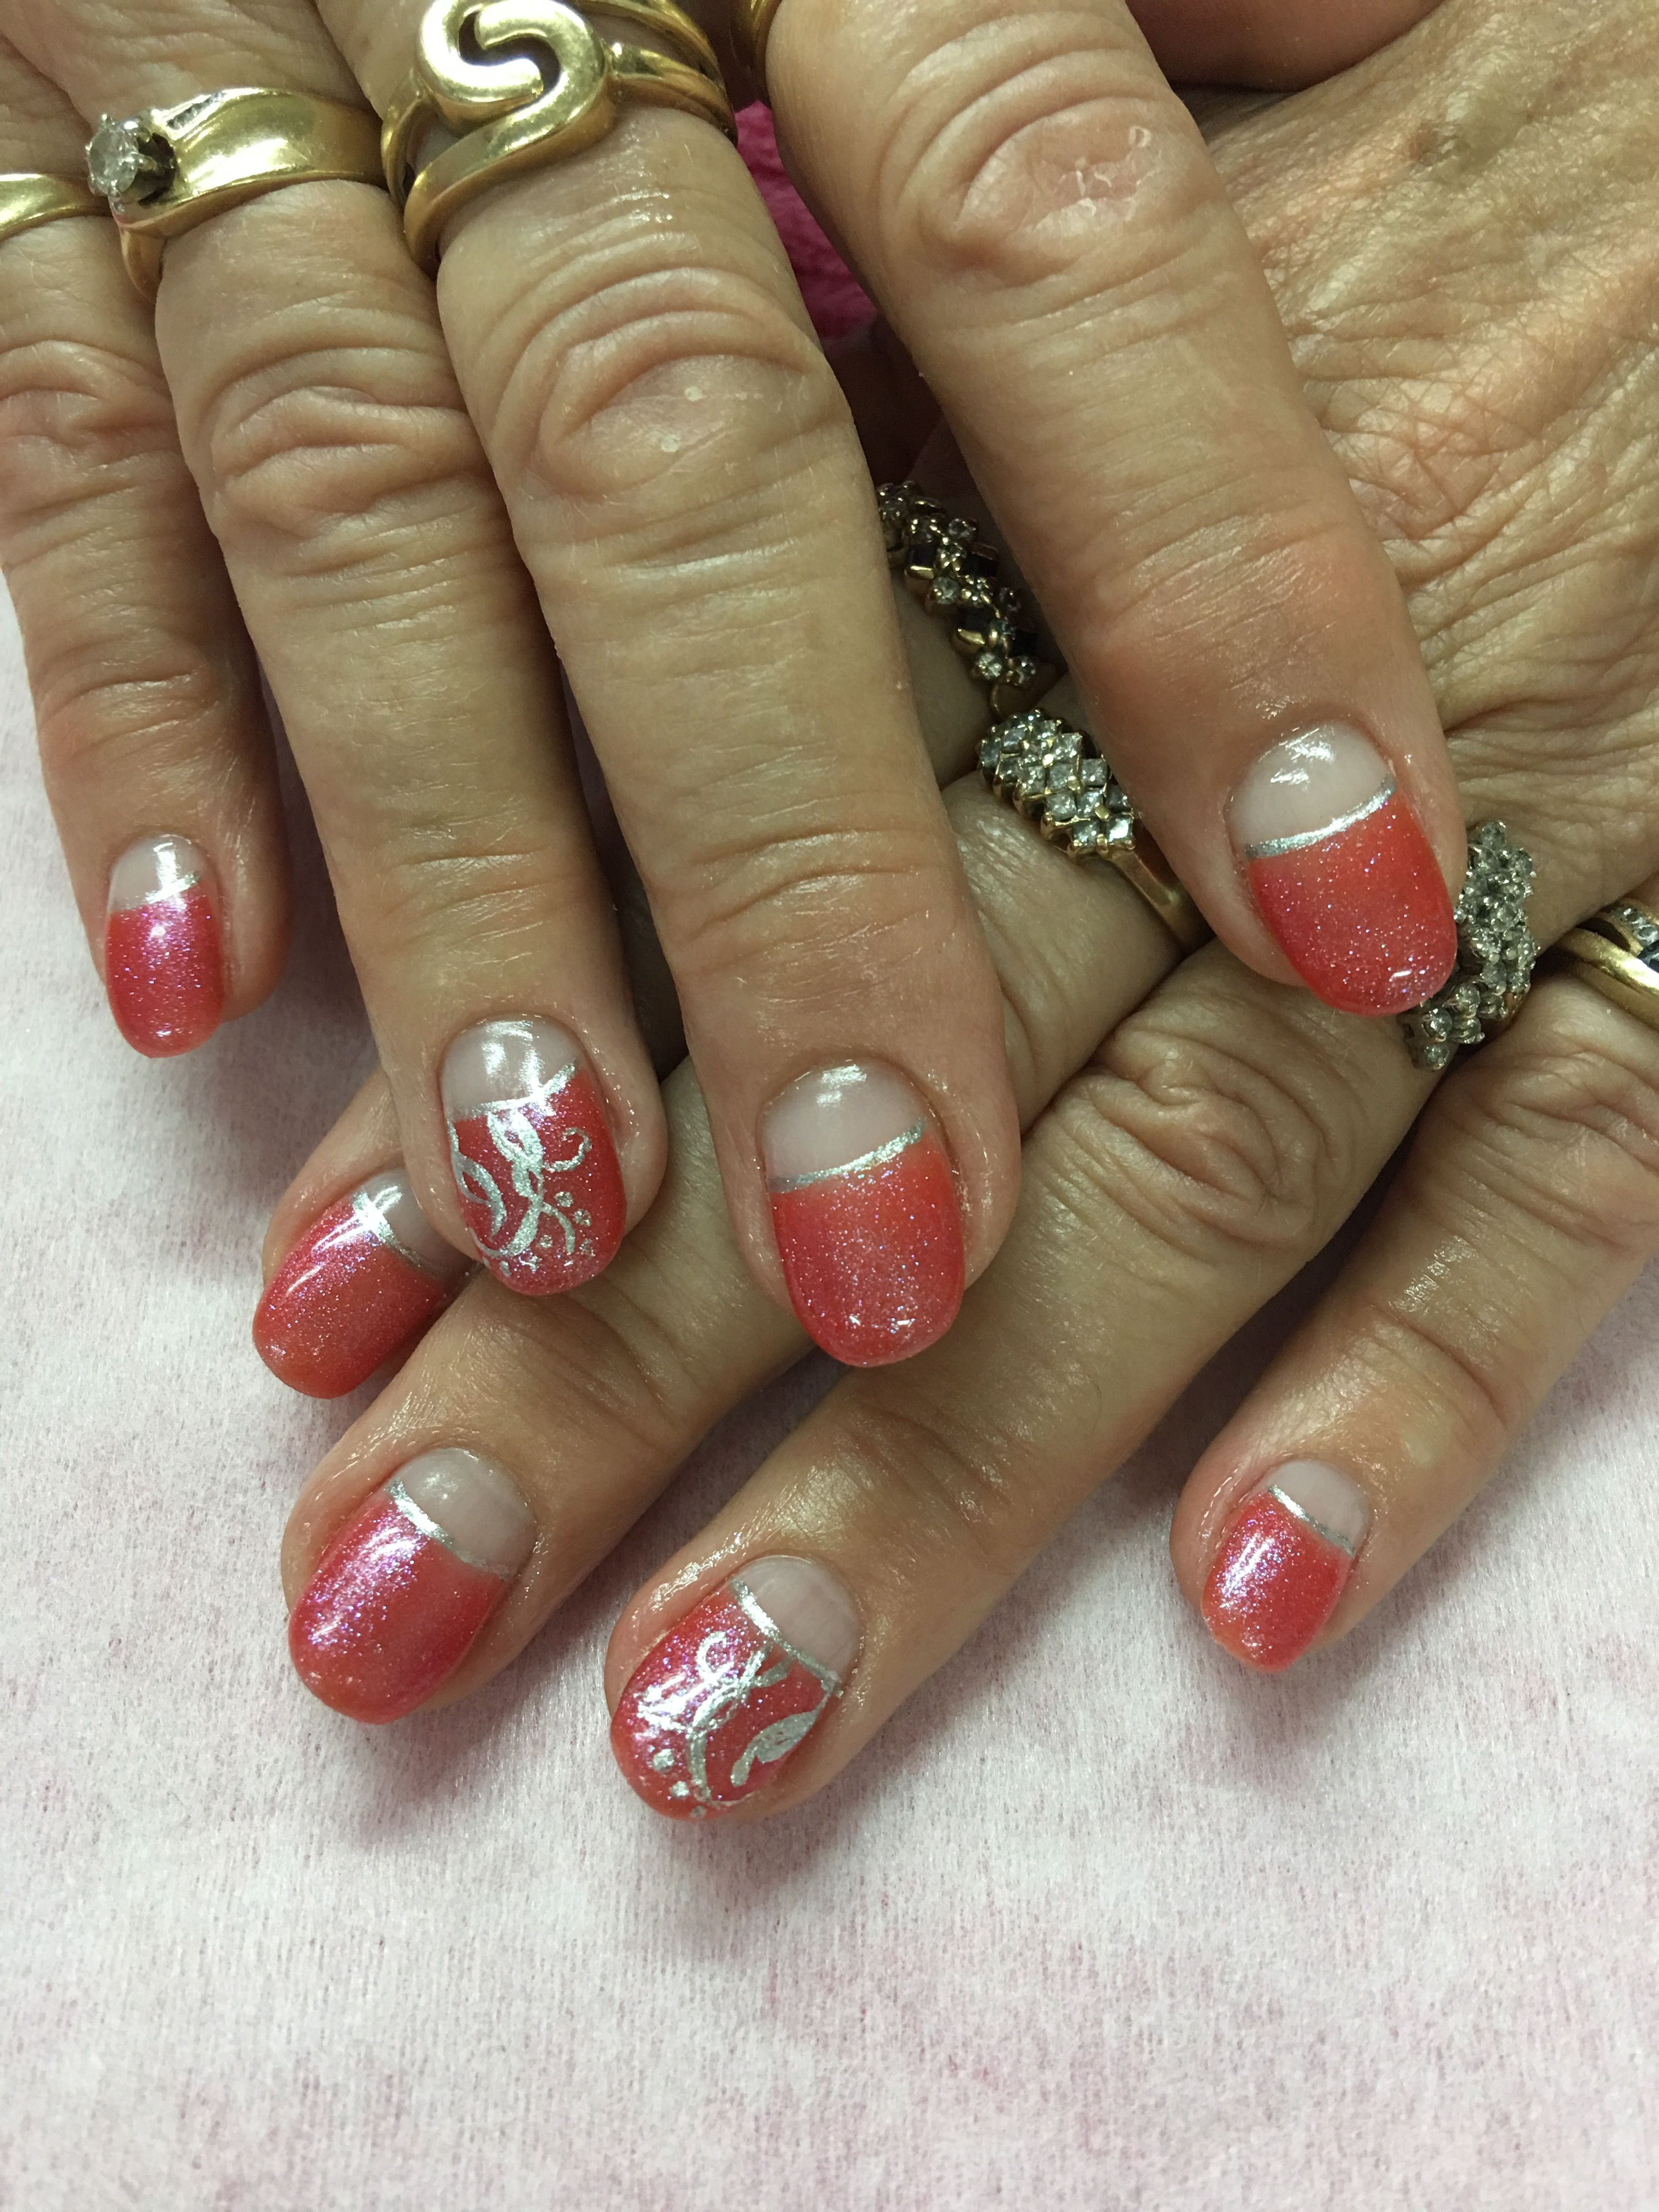 Iridescent Coral High French Gel Nails   Gel Nail designs   Pinterest